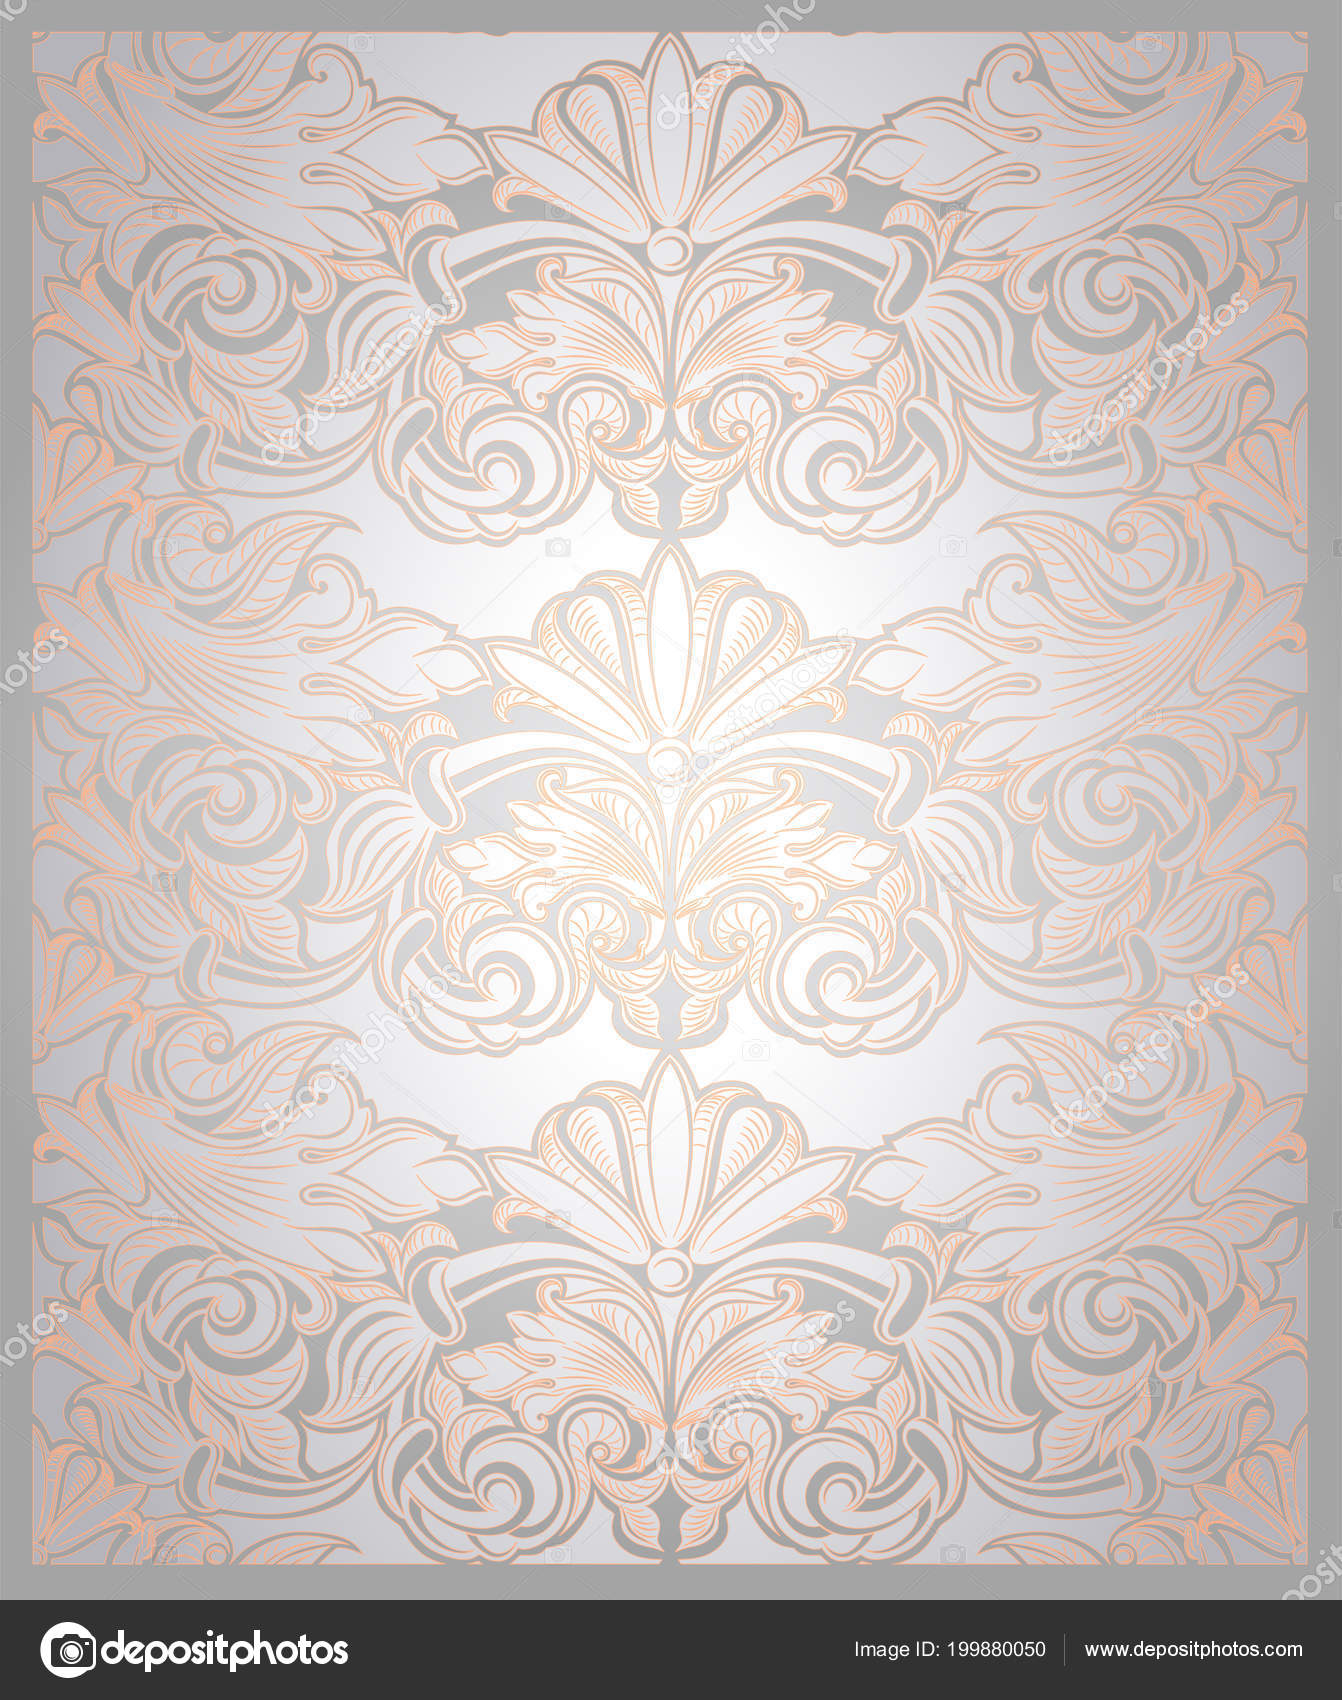 vintage vertical background pearl white gold classic baroque pattern rococo stock vector c xennya 199880050 depositphotos